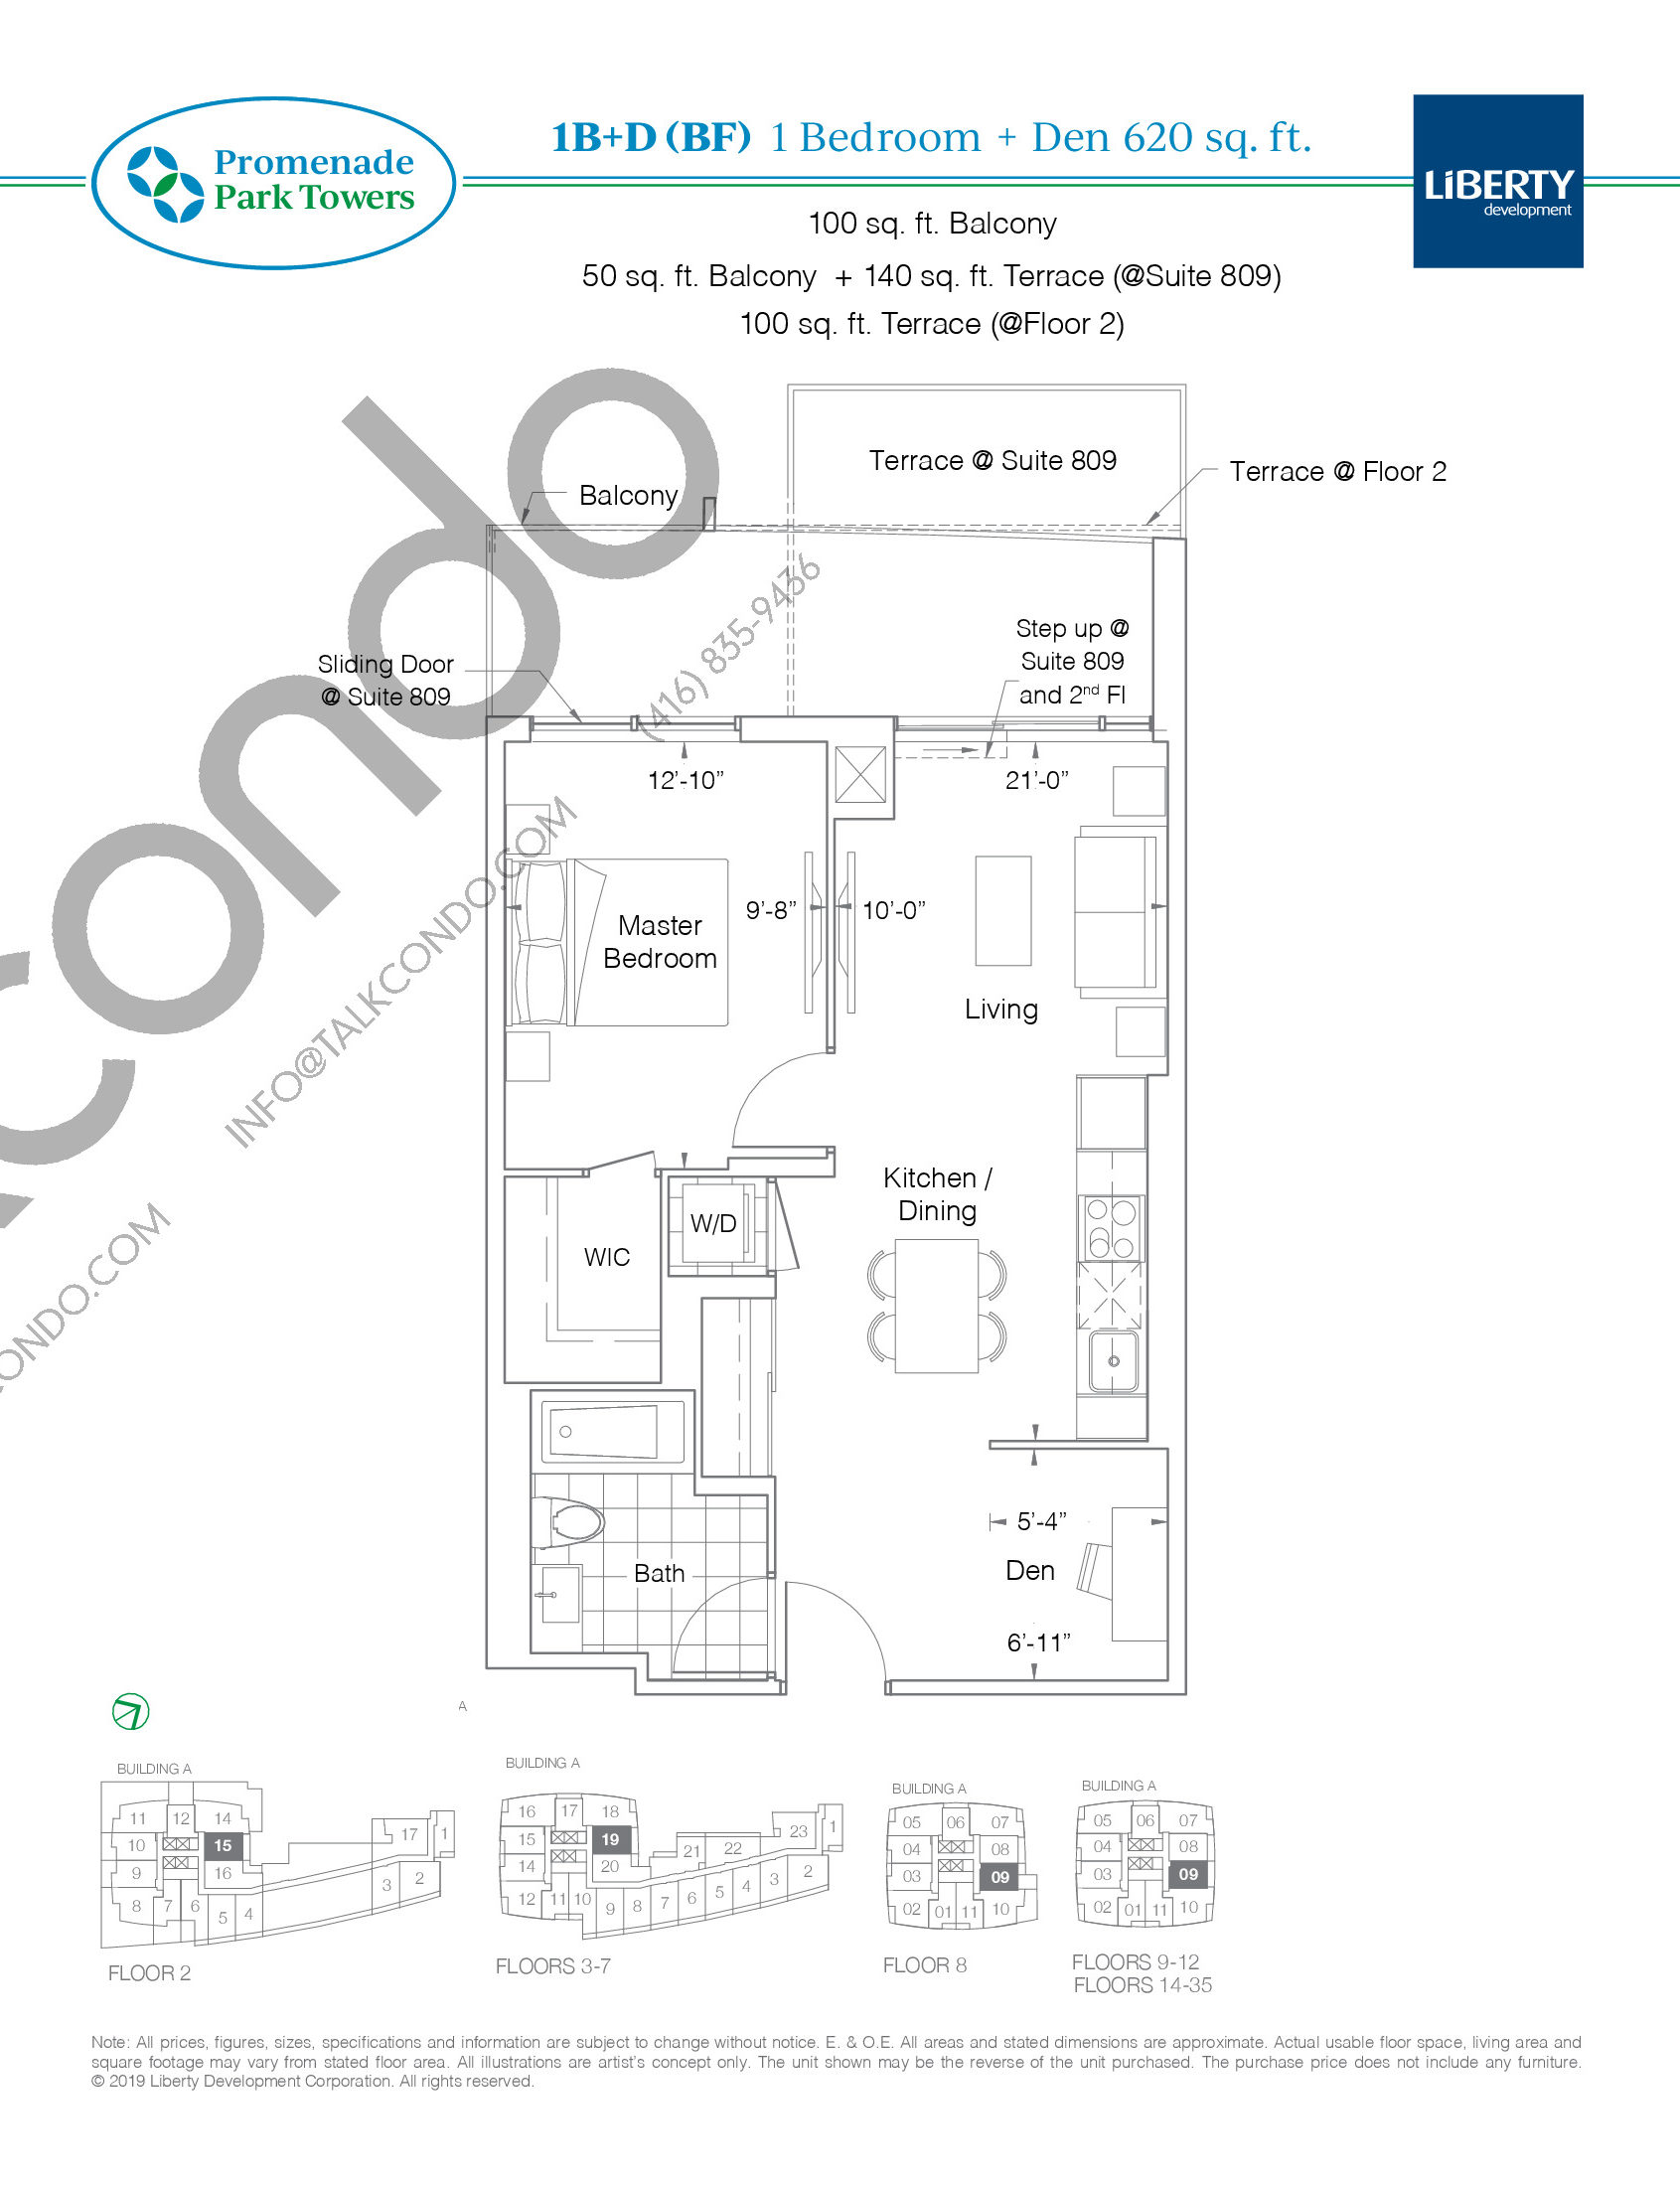 1B+D (BF) Floor Plan at Promenade Park Towers Condos - 620 sq.ft